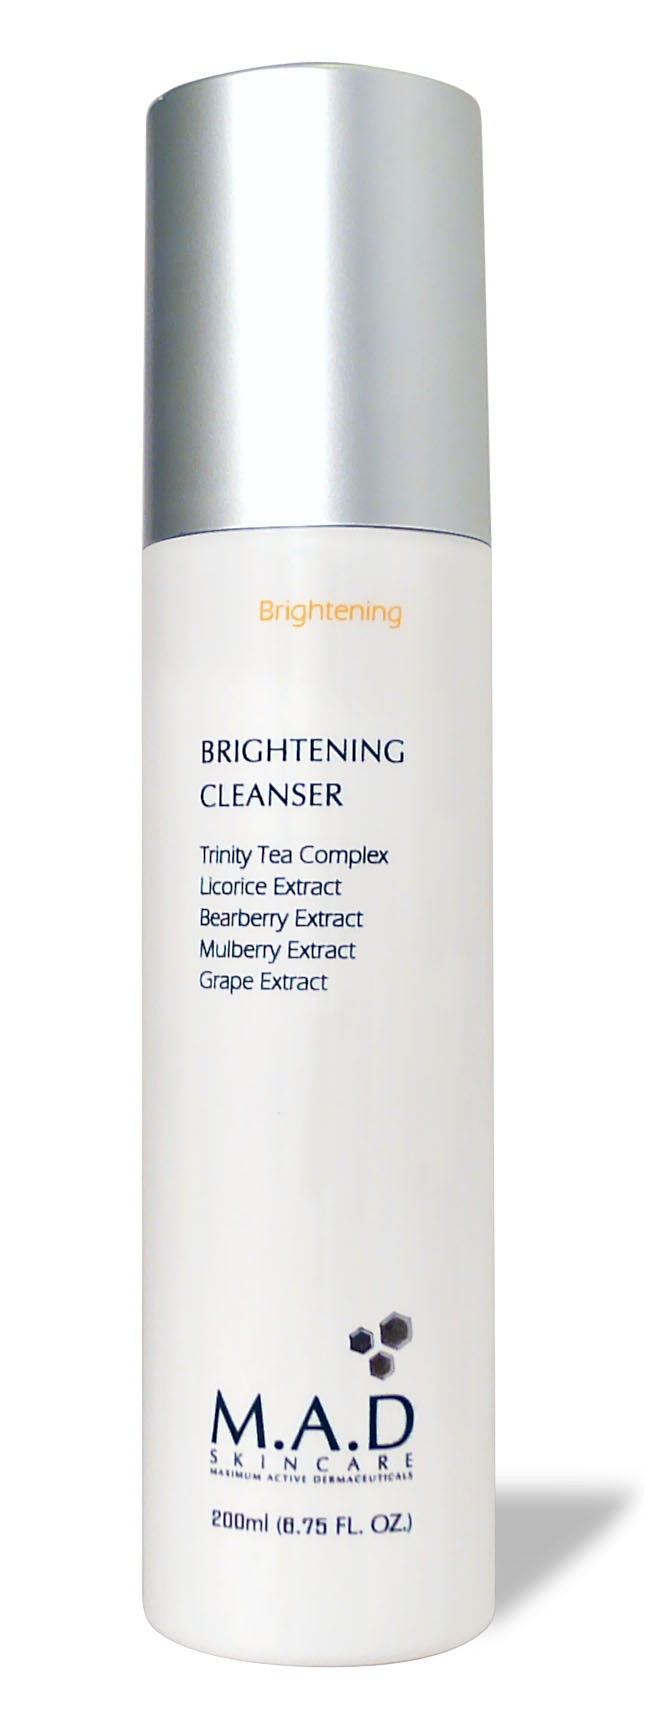 Mad Skincare   Brightening Cleanser   Skincare by Alana